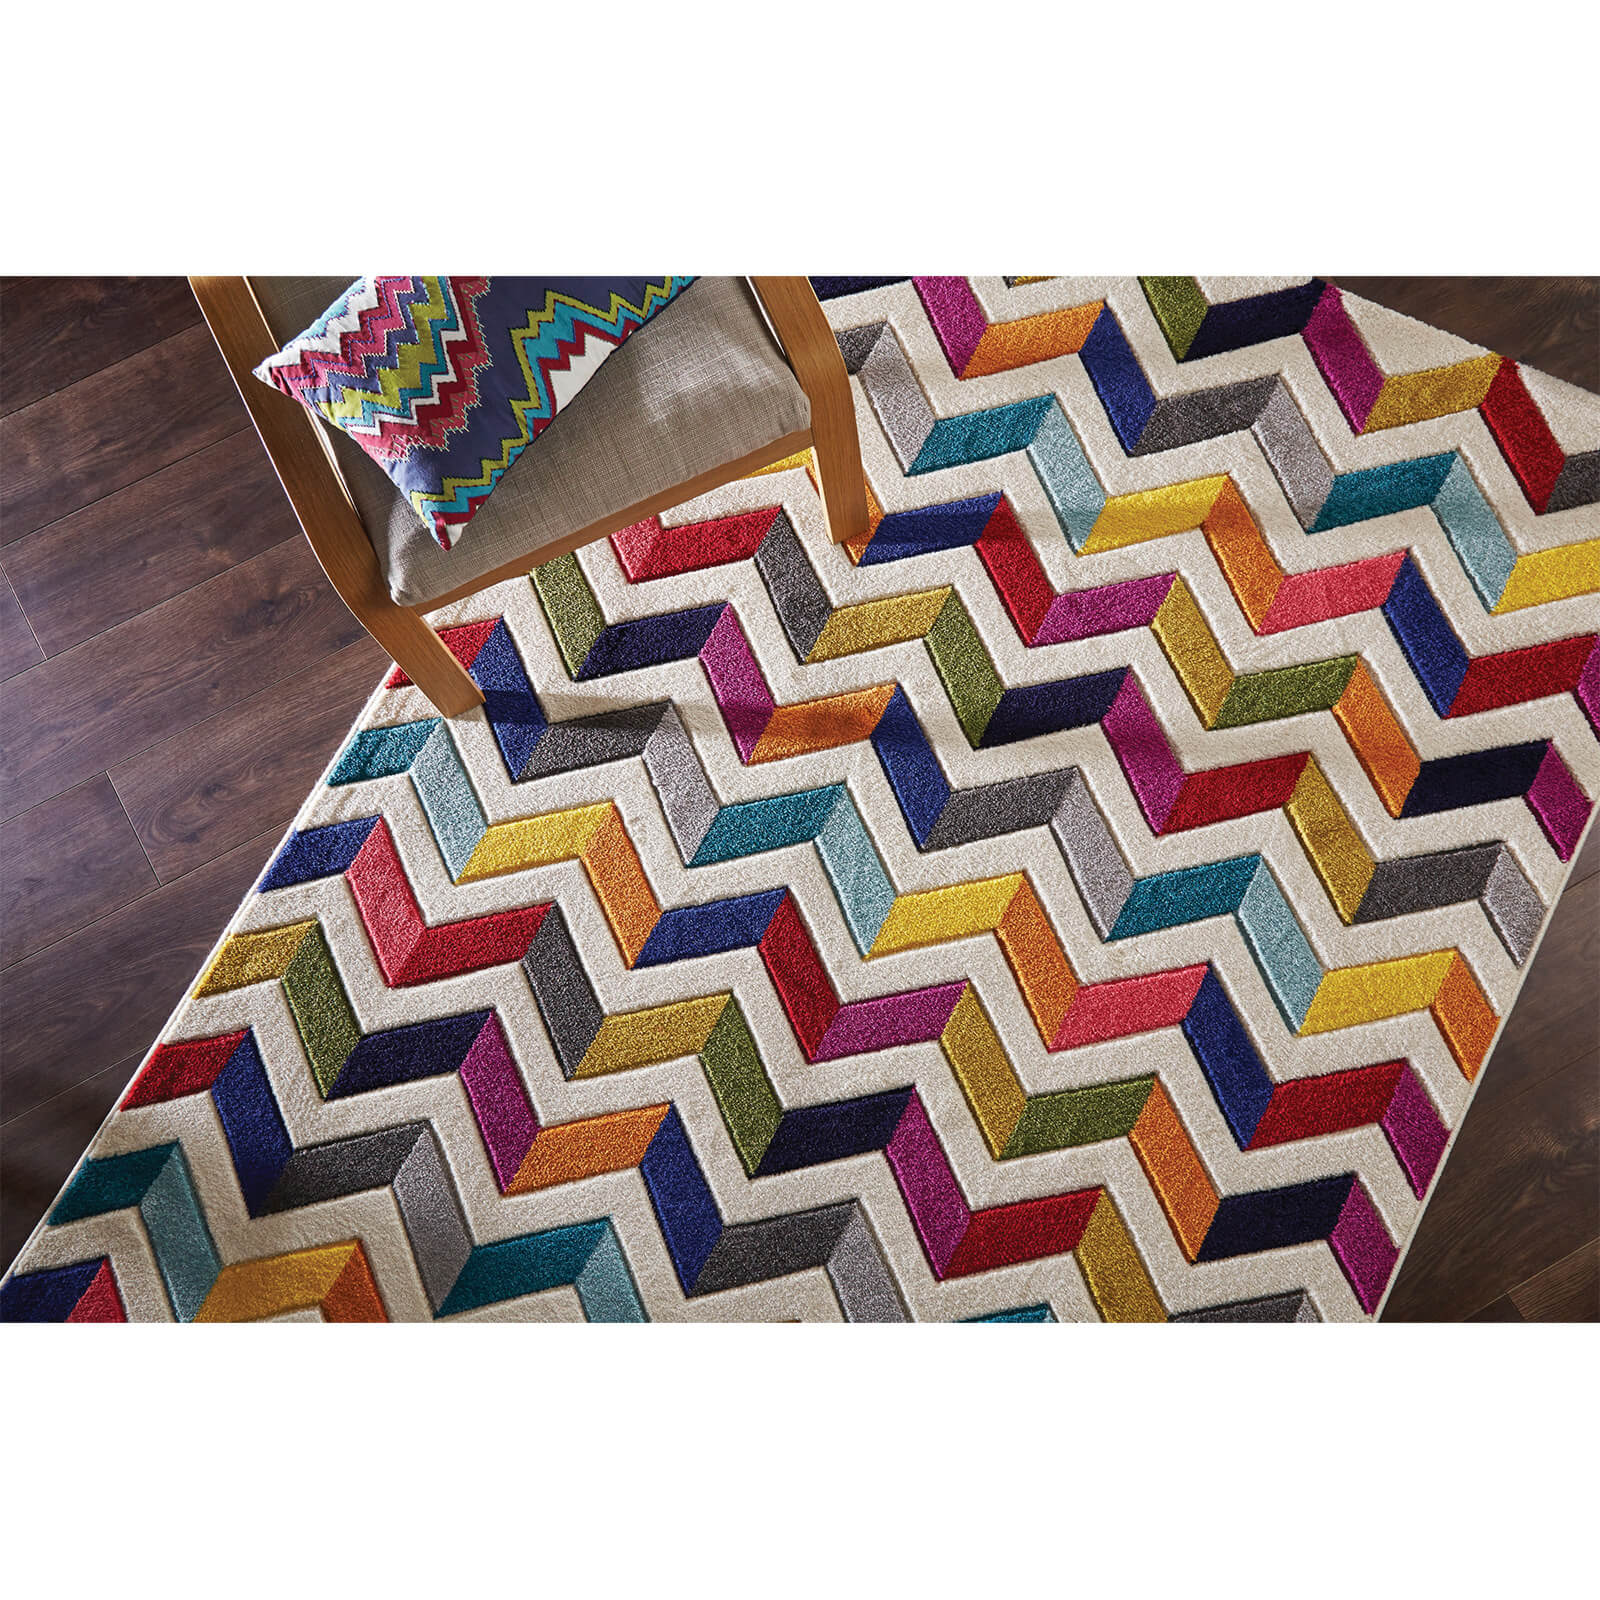 Flair Spectrum Bolero Rug - Multi